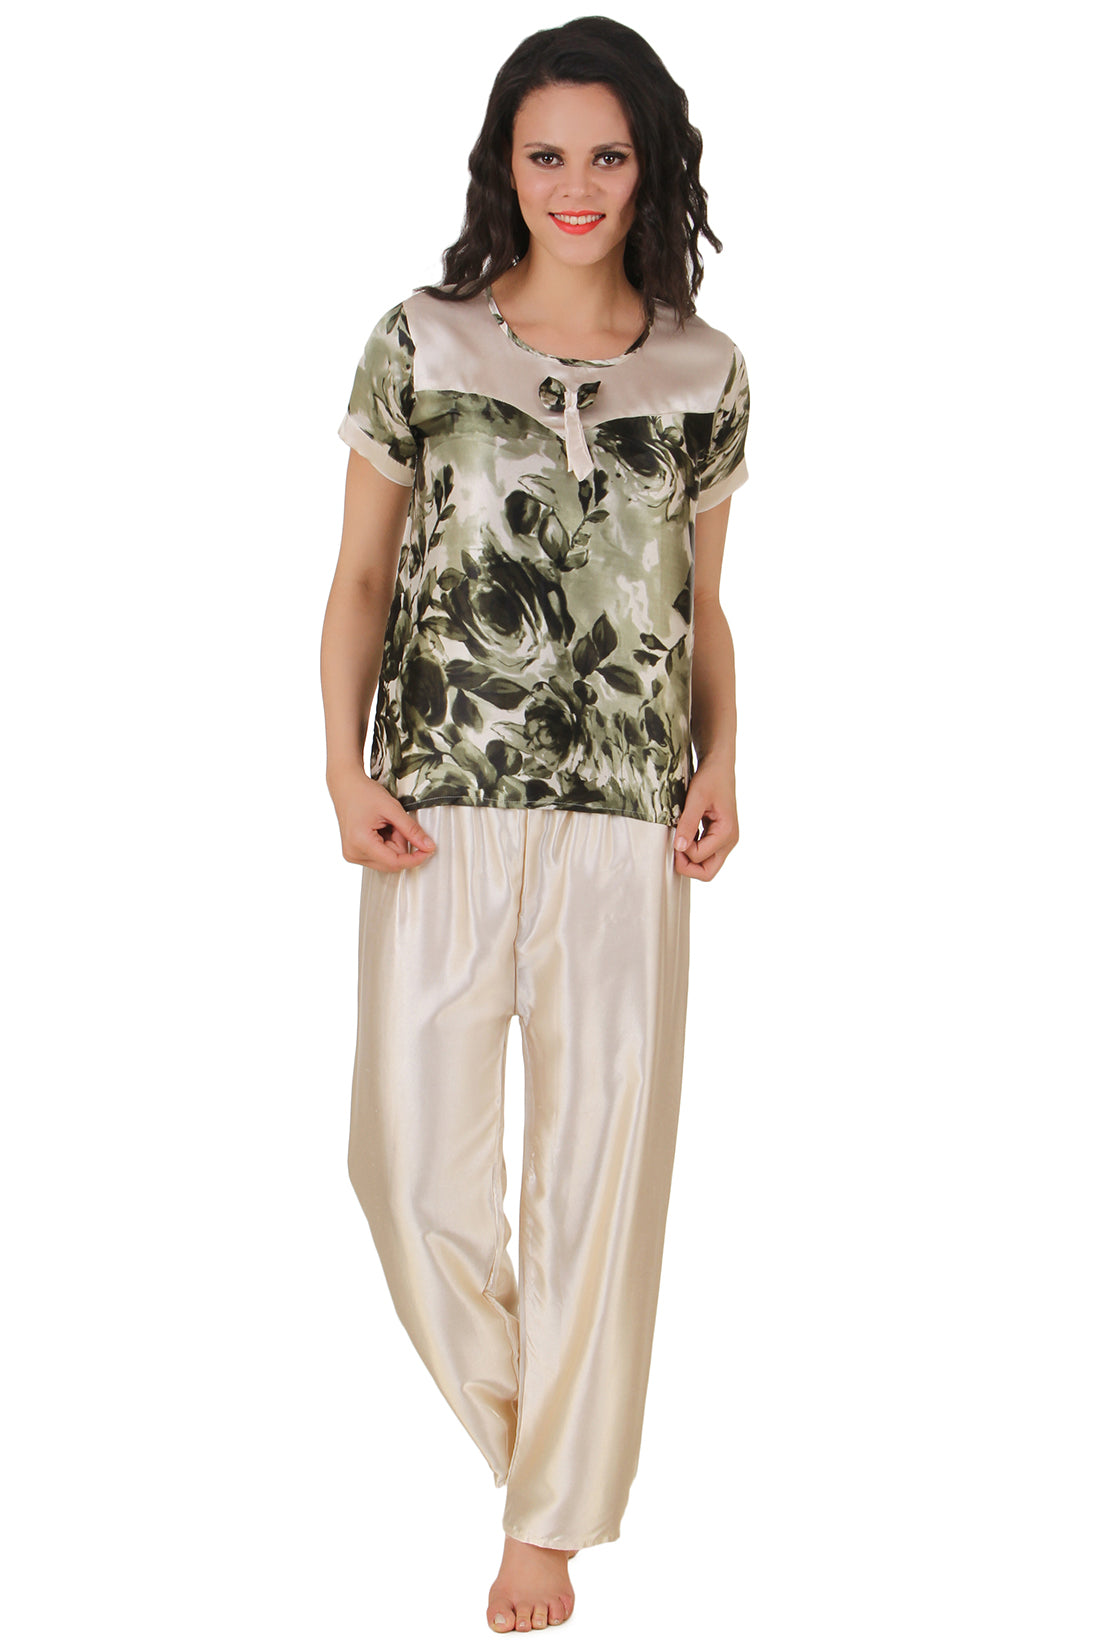 Fasense Satin Night Suit Top & Pyjama Set DP123 - fasensestore